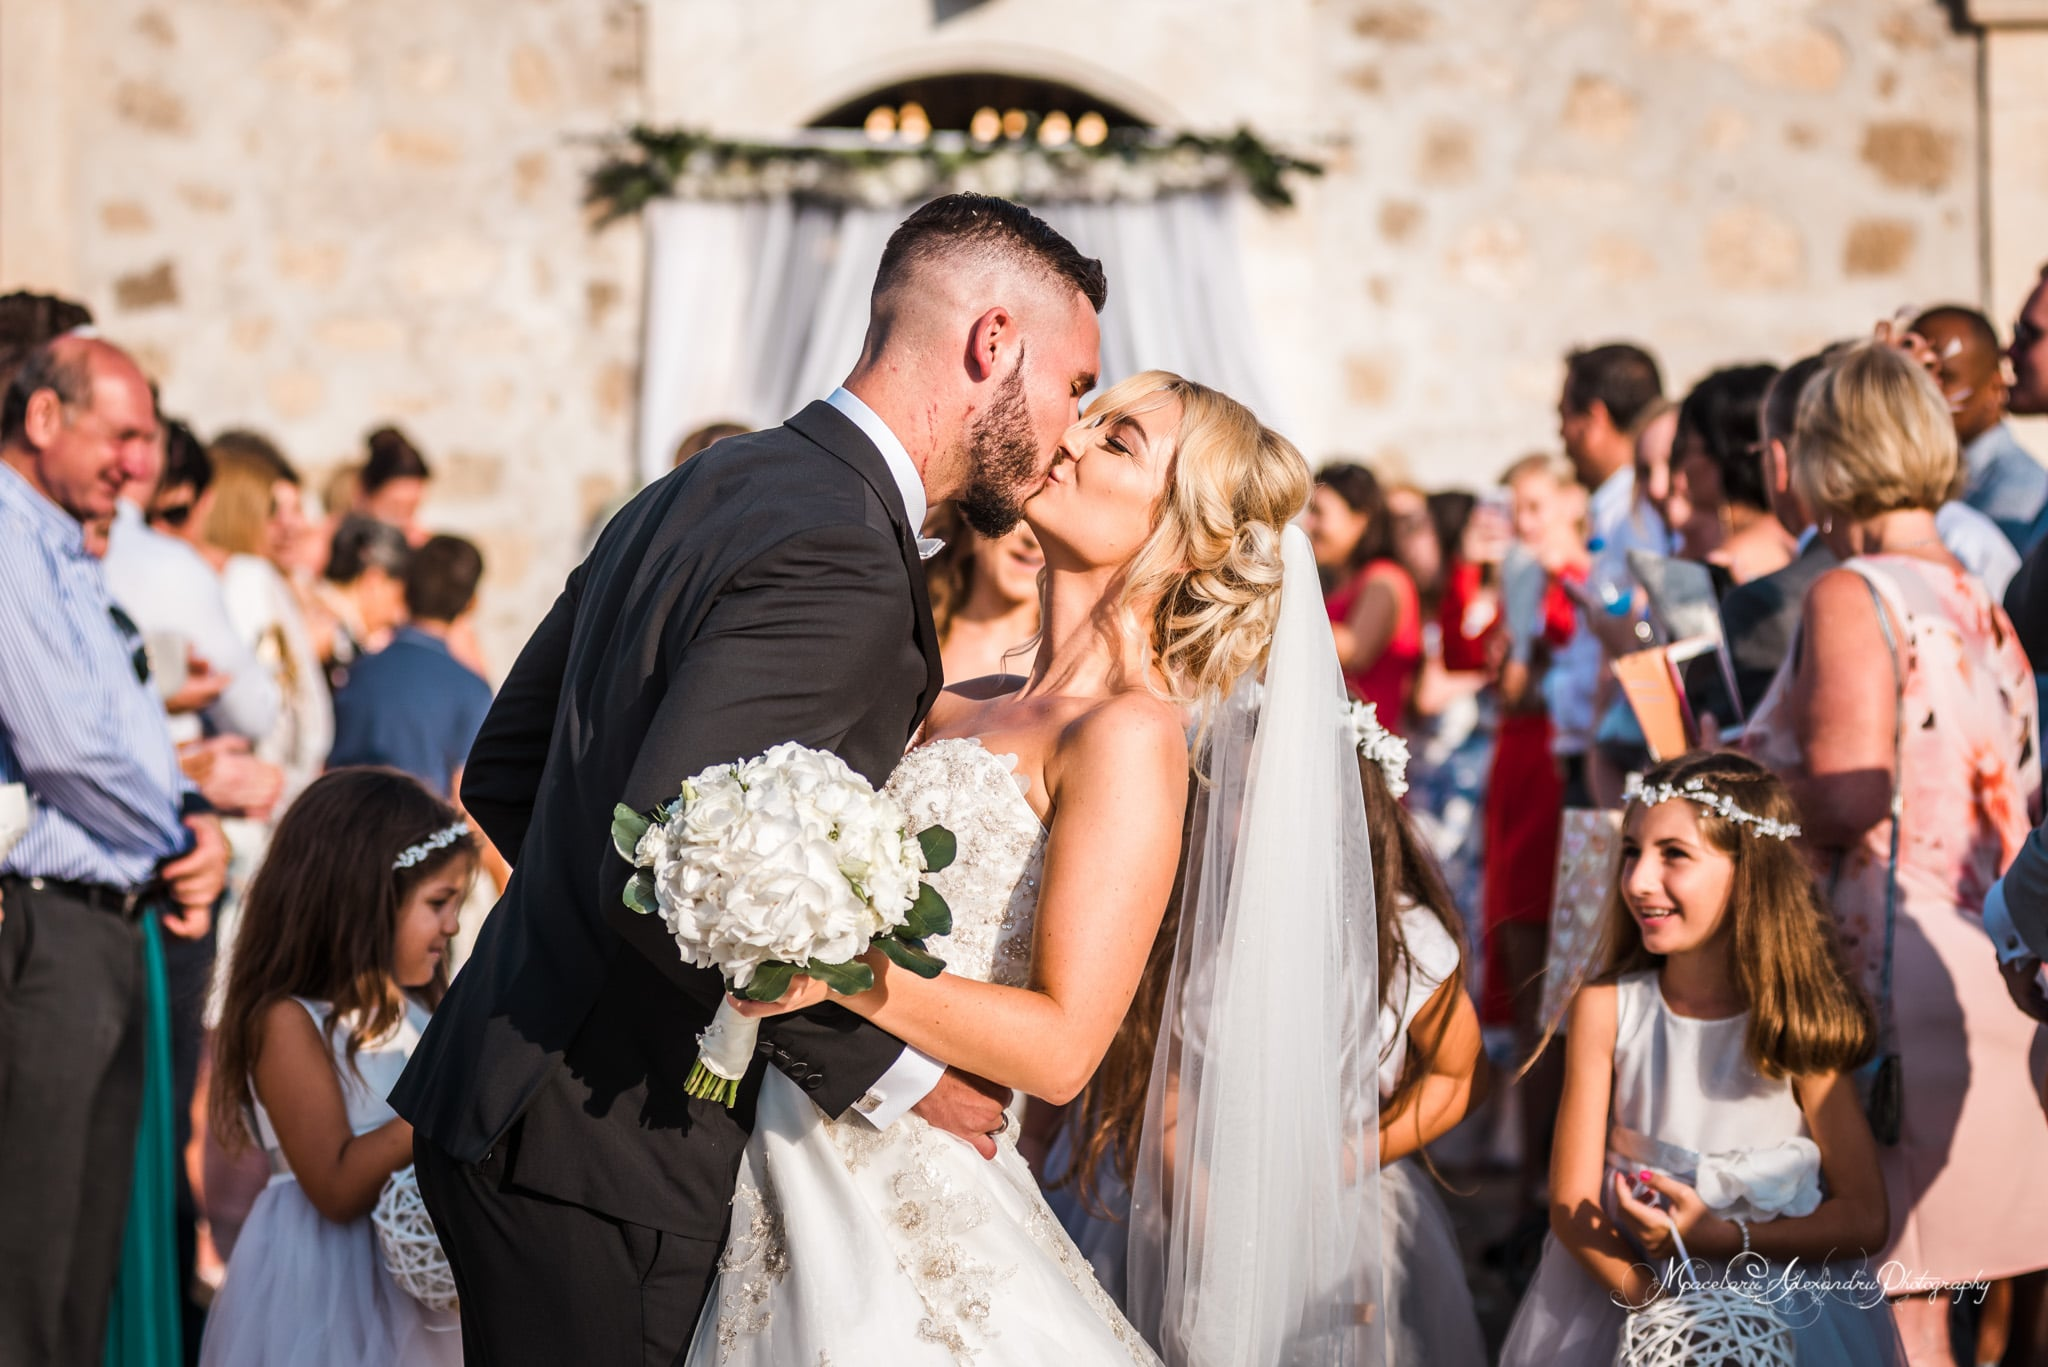 Wedding photography in Paphos - Bride and groom kiss in front of the church